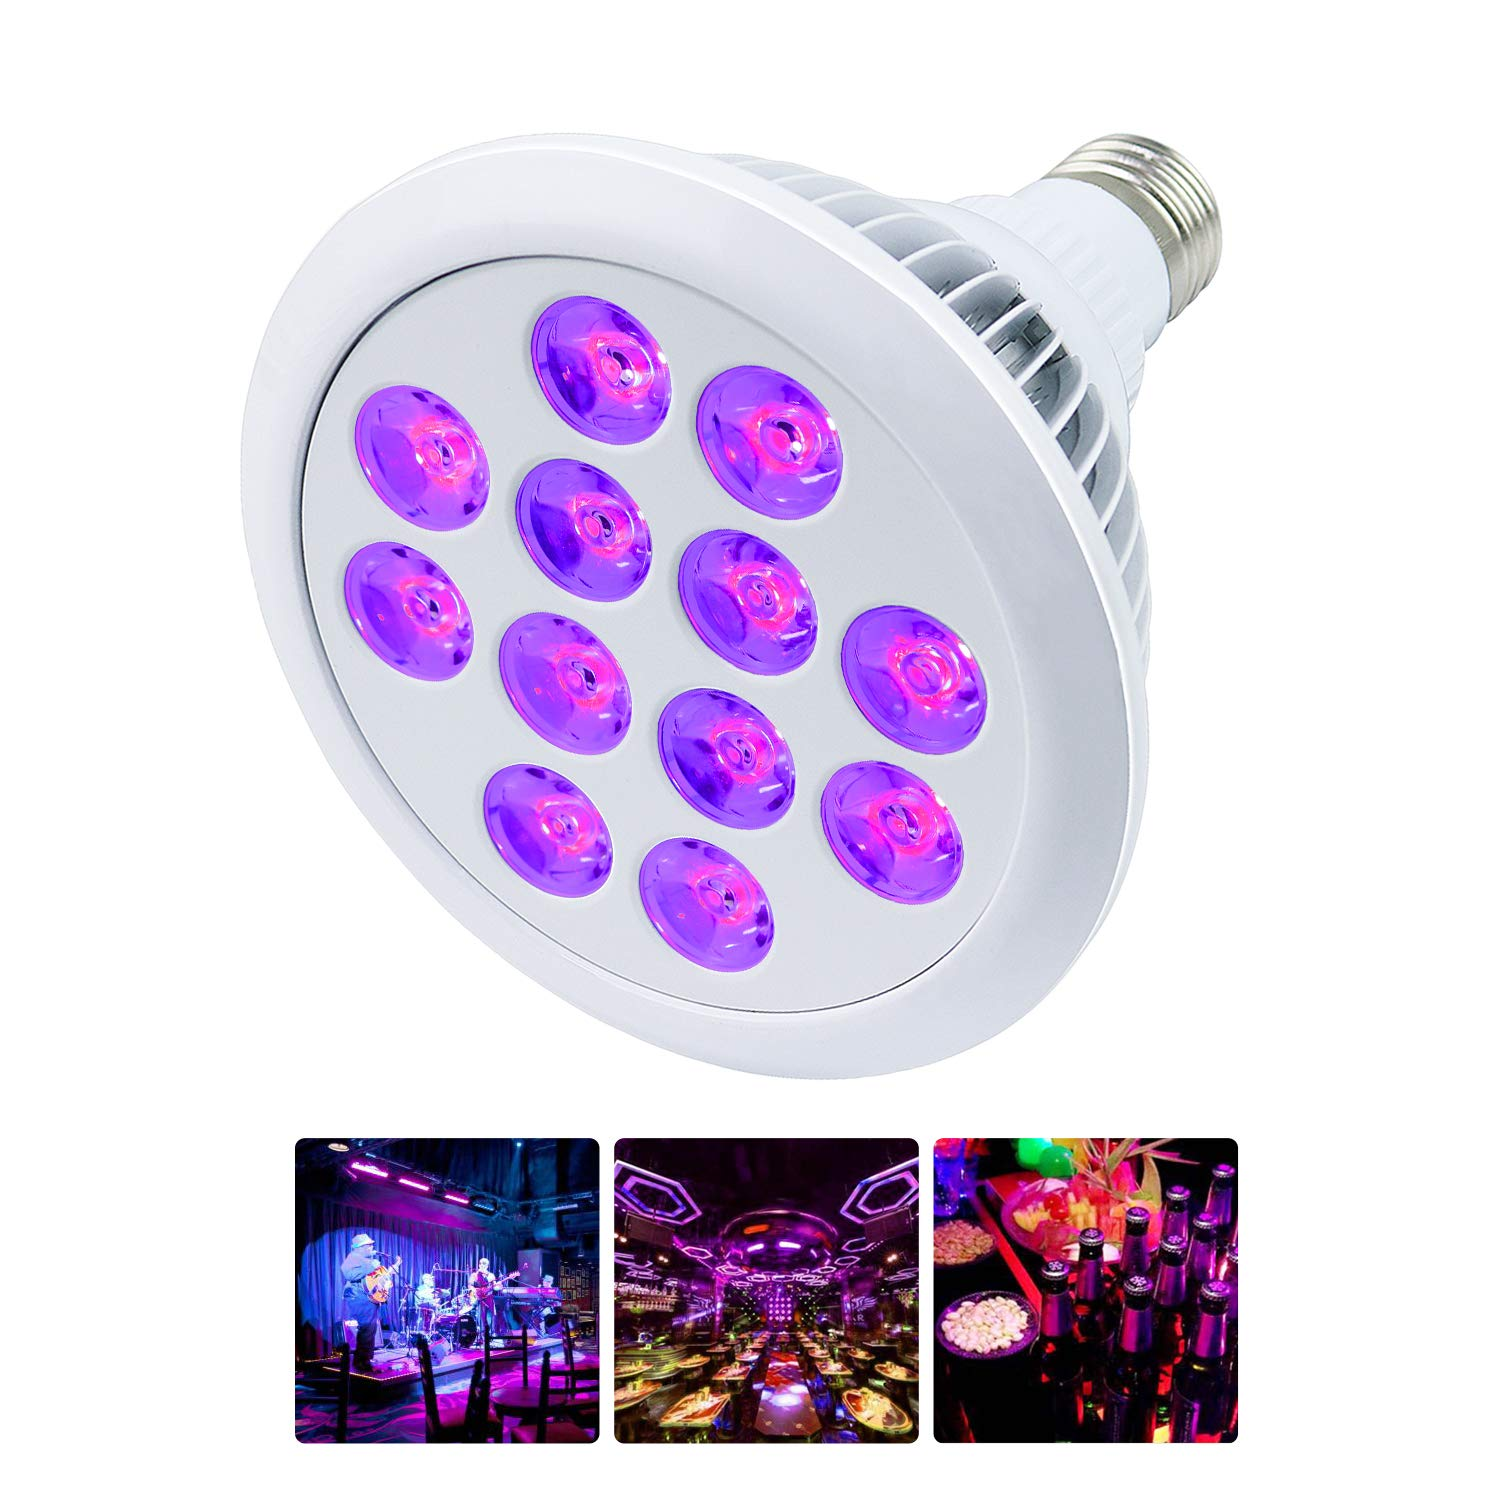 Black Light Bulb 24W 12 LED UV Bar E26 E27 PAR38 for Home Party Stage Neon Glow Blacklight Party Birthday Stage Body Paint Fluorescent Poster Wedding Lighting